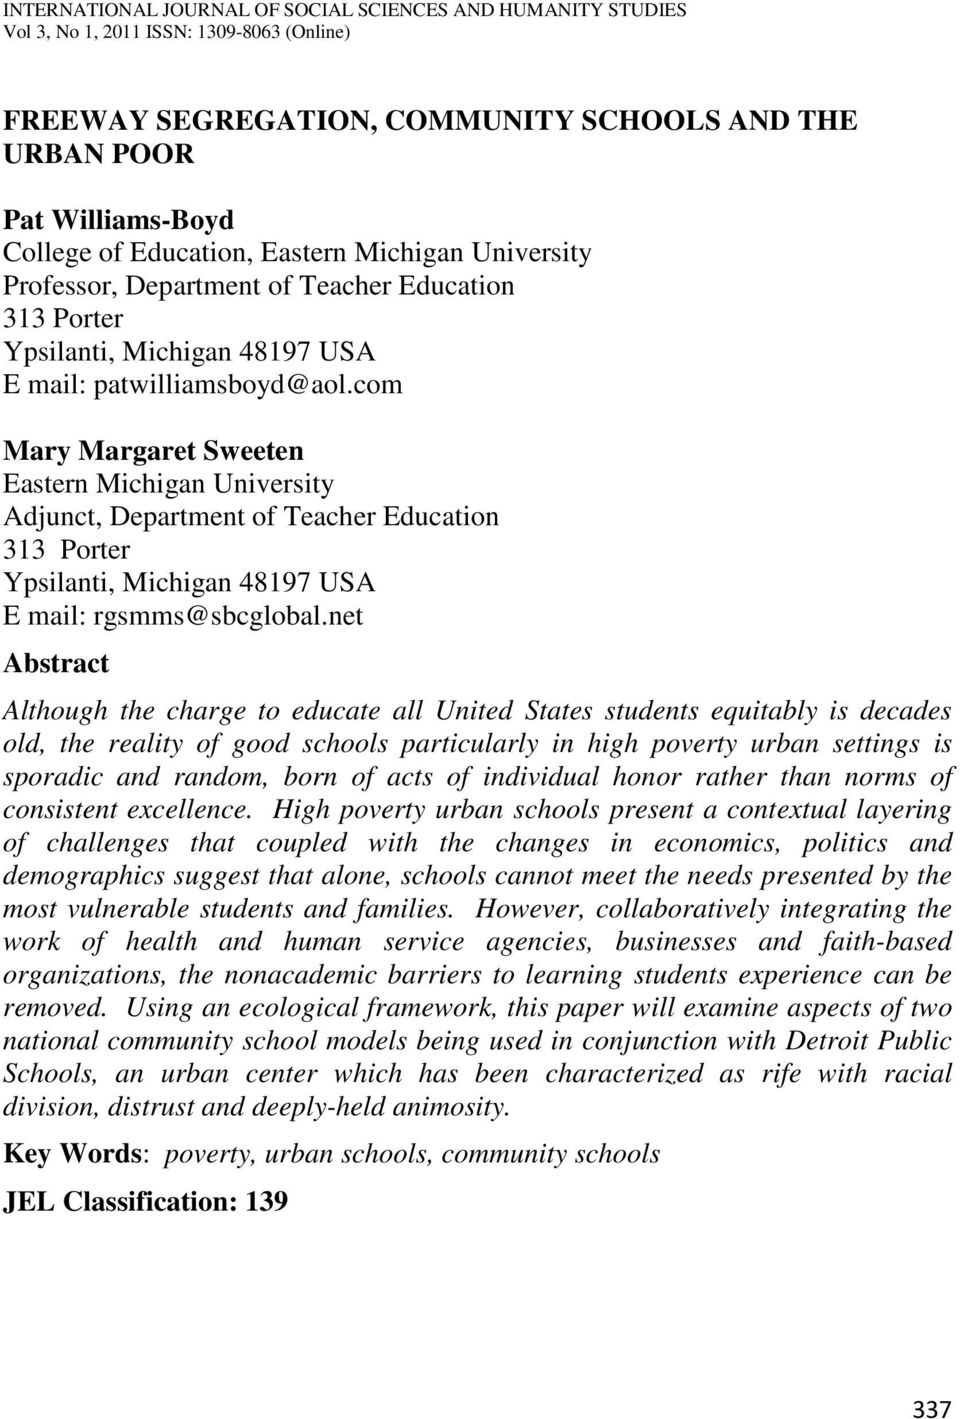 net Abstract Although the charge to educate all United States students equitably is decades old, the reality of good schools particularly in high poverty urban settings is sporadic and random, born